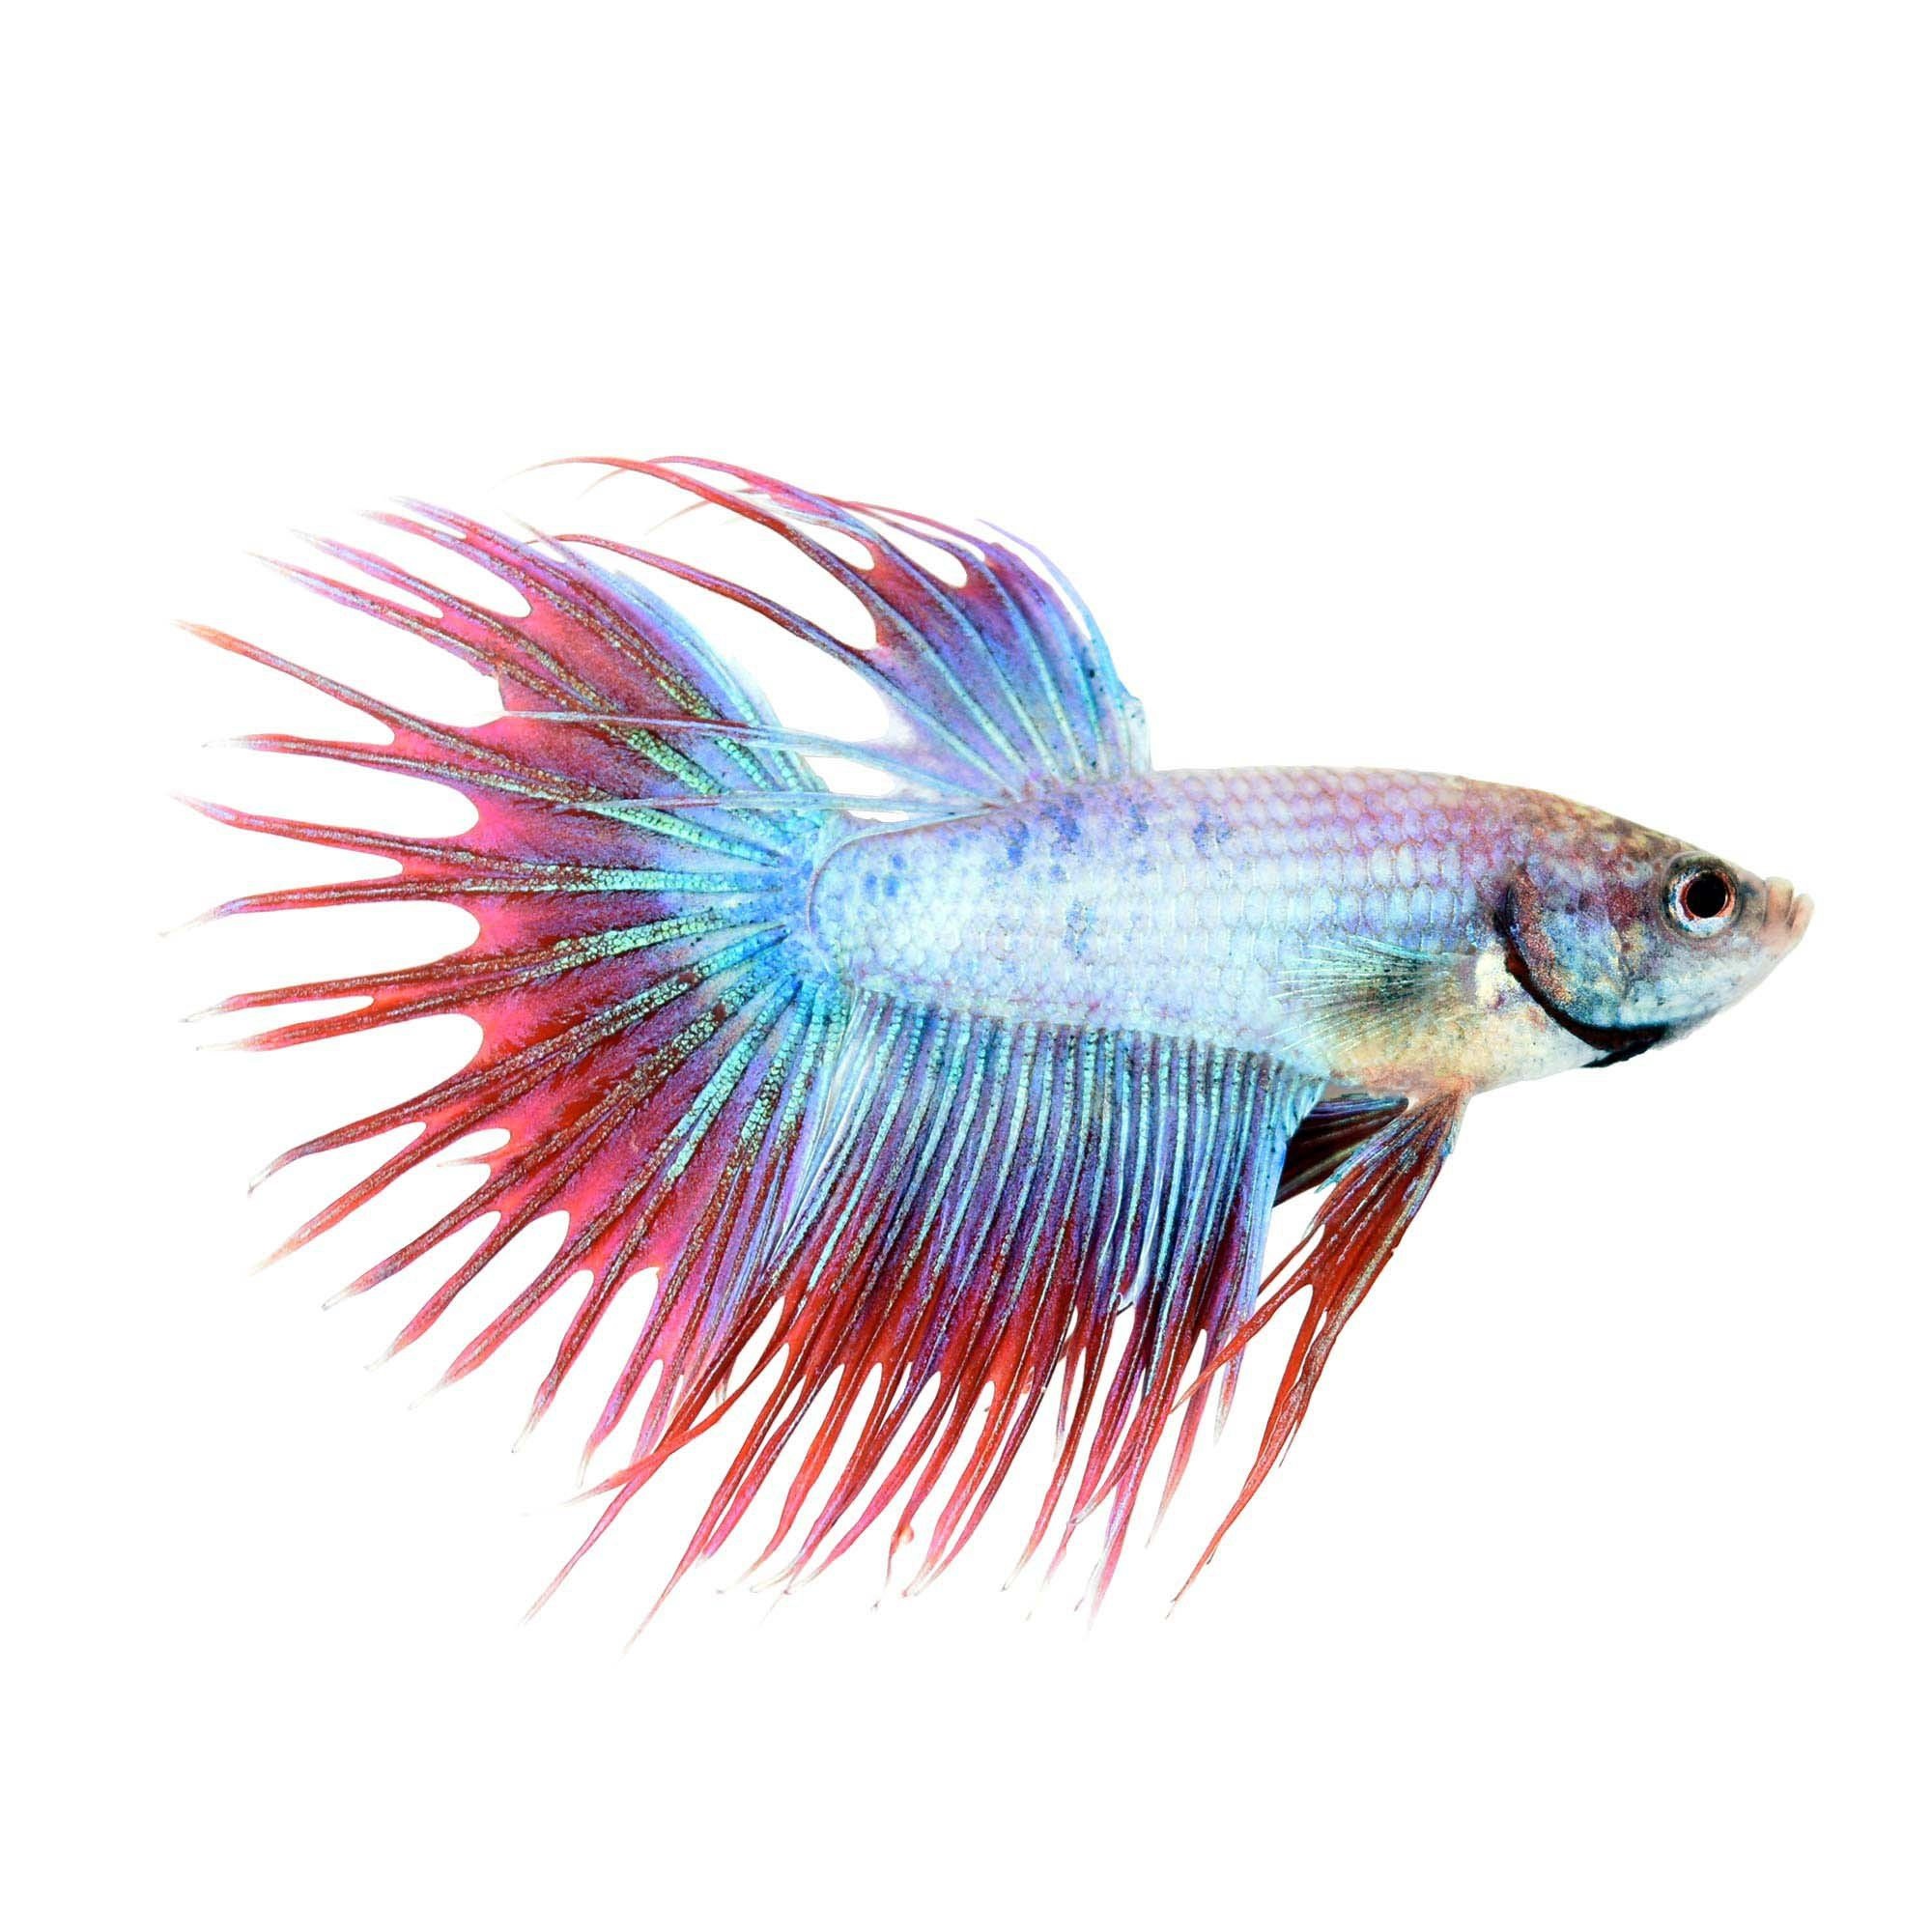 Male Cambodian Crowntail Betta Petco Betta Petco Siamese Fighting Fish